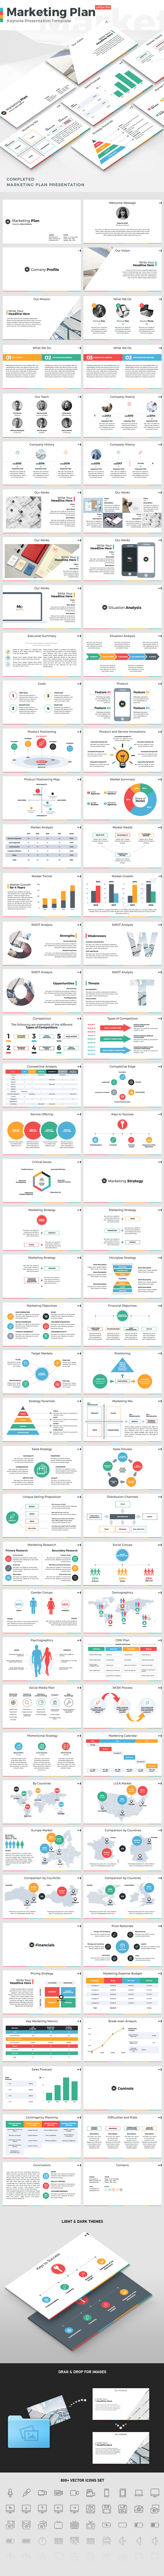 Marketing Plan - Keynote Presentation Template - Keynote Templates Presentation Templates